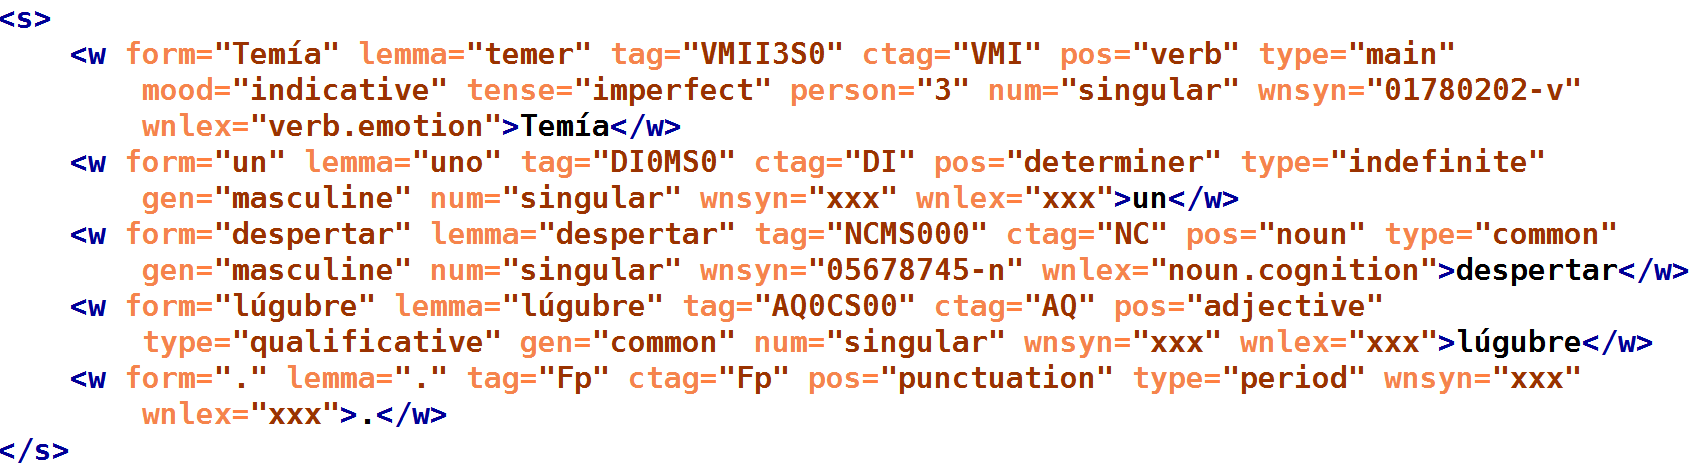 Linguistic annotations in an XML format that is a minimal departure from the TEI standard to allow multiple token-level annotations